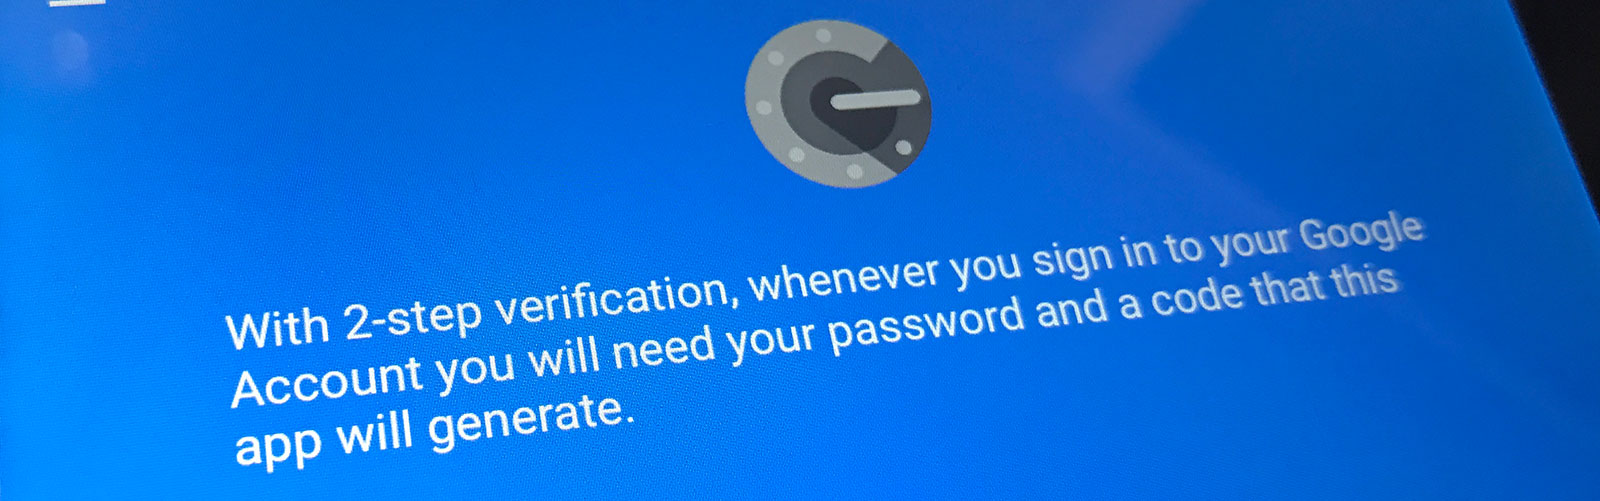 transfer google authenticator to new phone